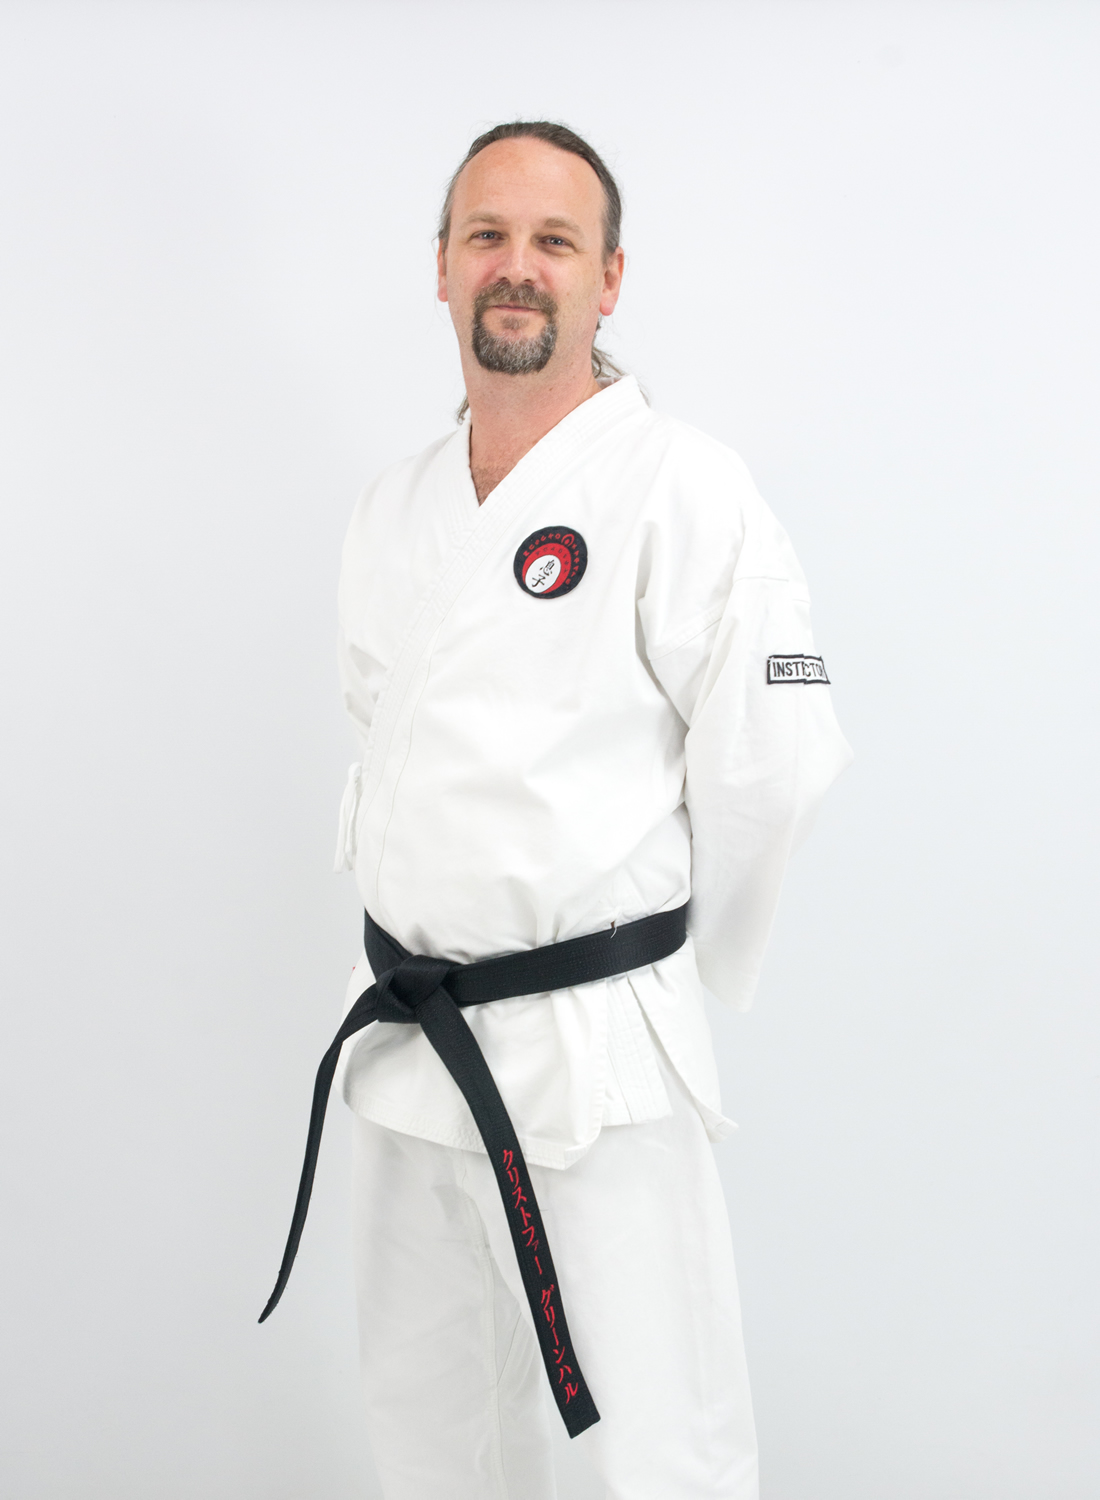 Sensei Chris Greenhalgh